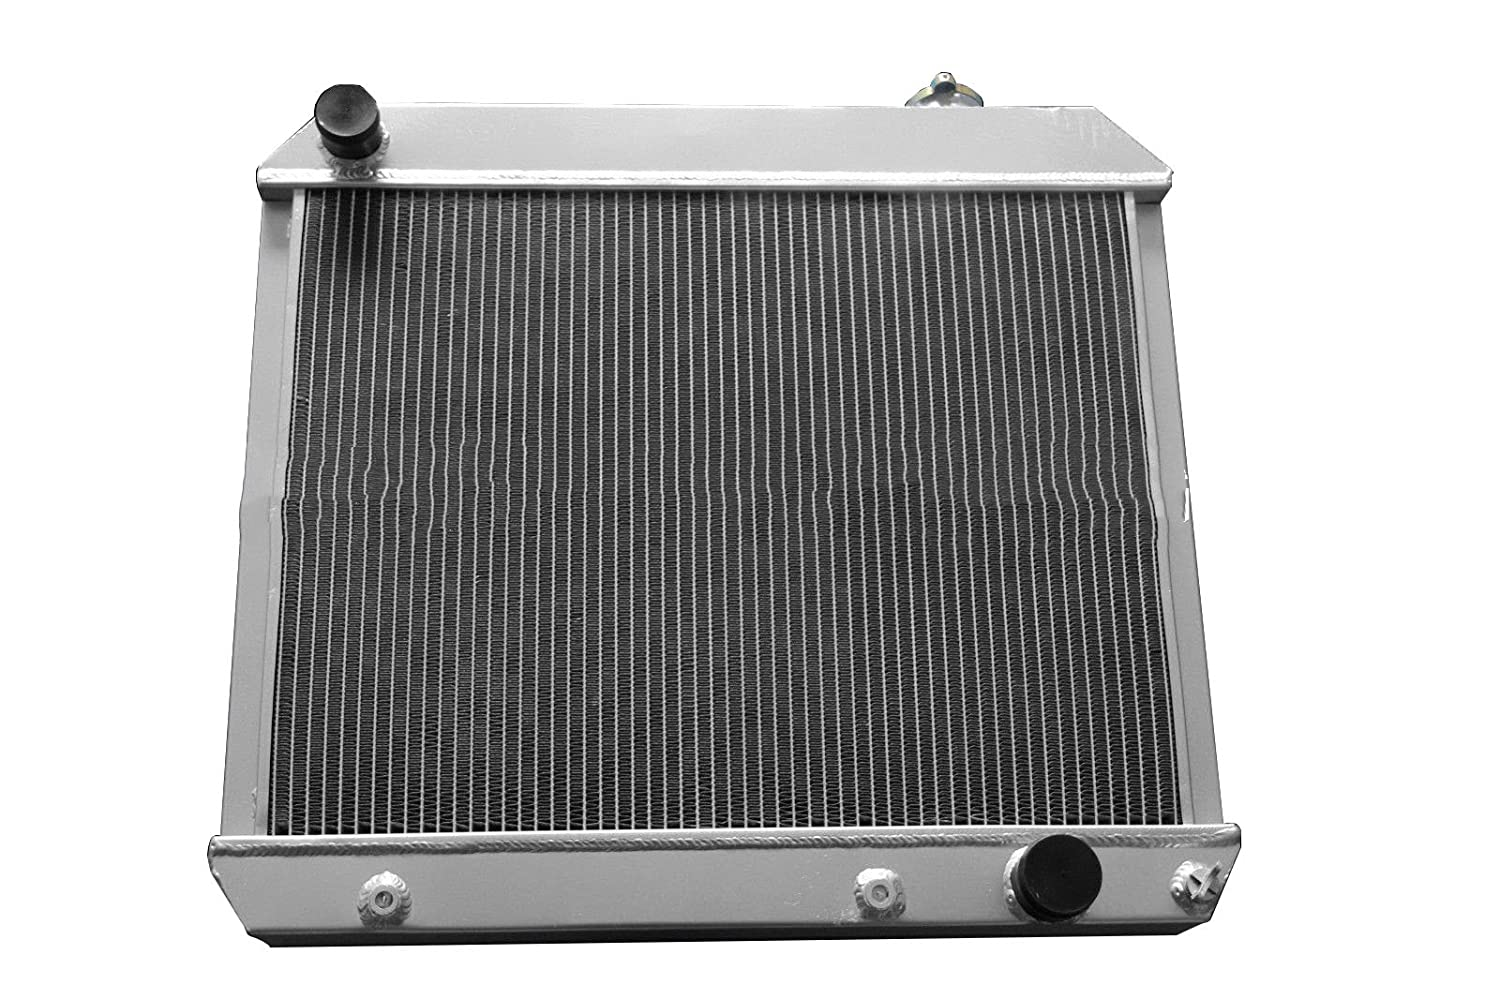 ZC284 New 3 Rows All Aluminum Radiator Fit 61-66 Chevy C10 Pickup Truck C20 C30 K10 K20